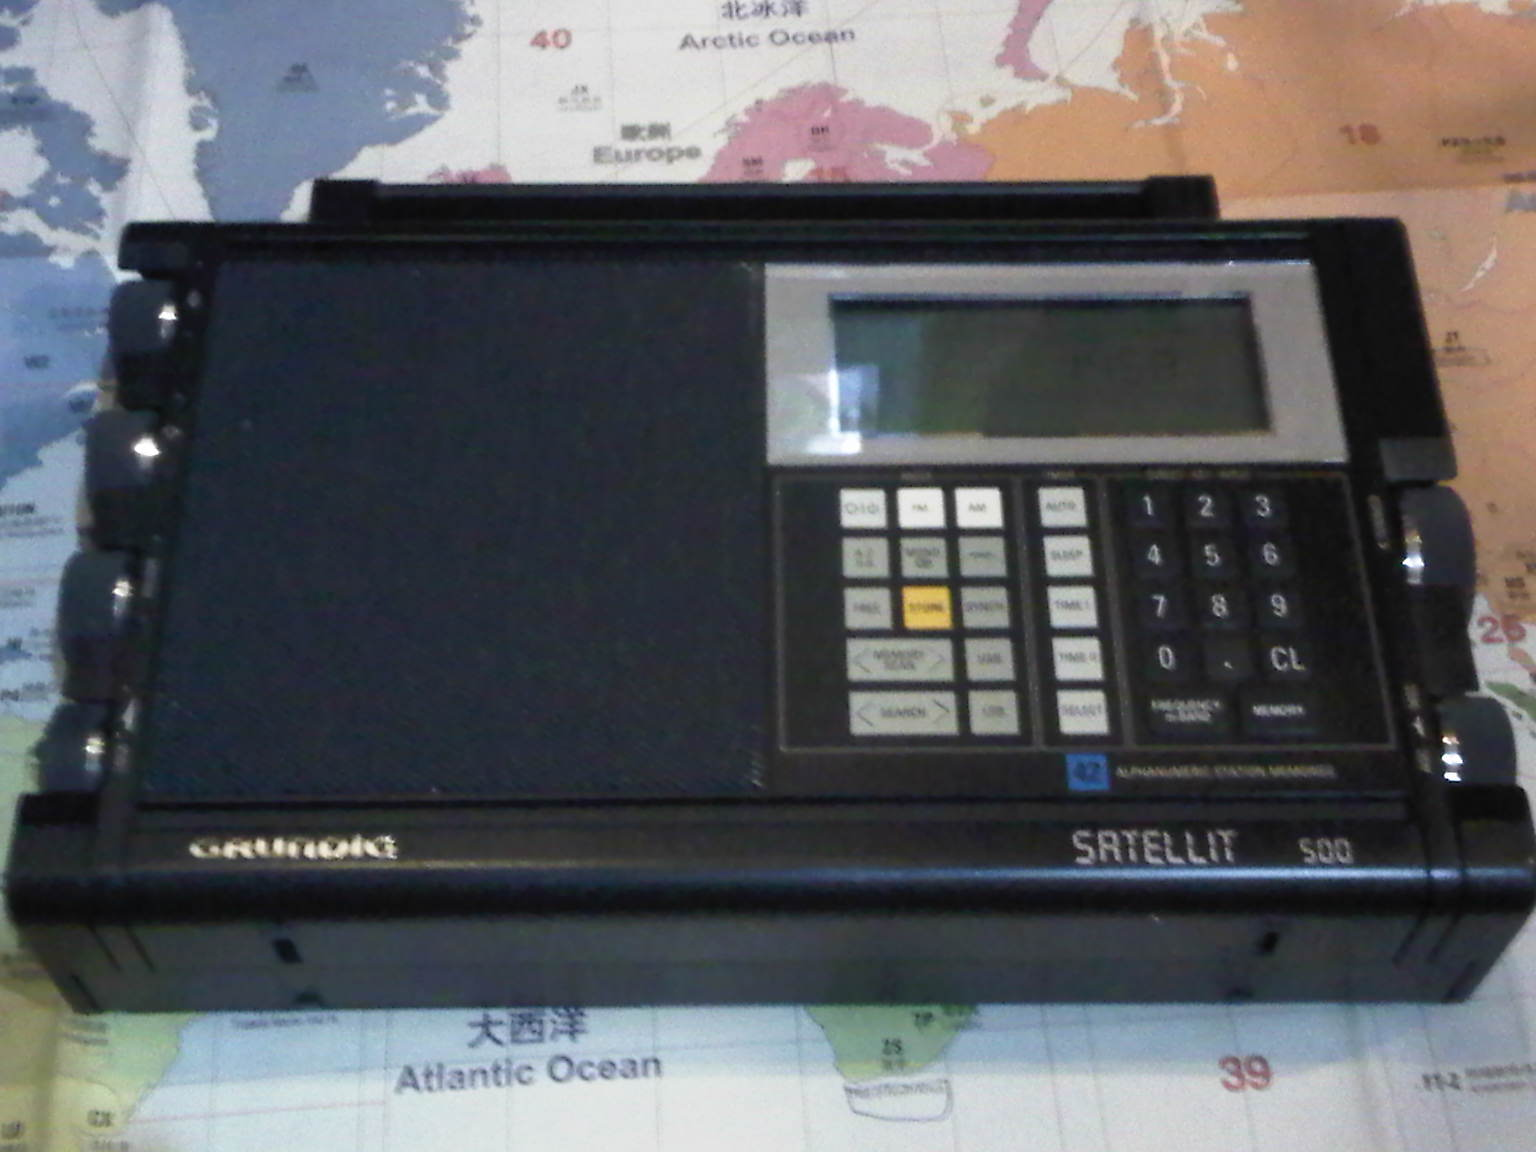 South East Asia Dxing Grundig Satellit 500 Review